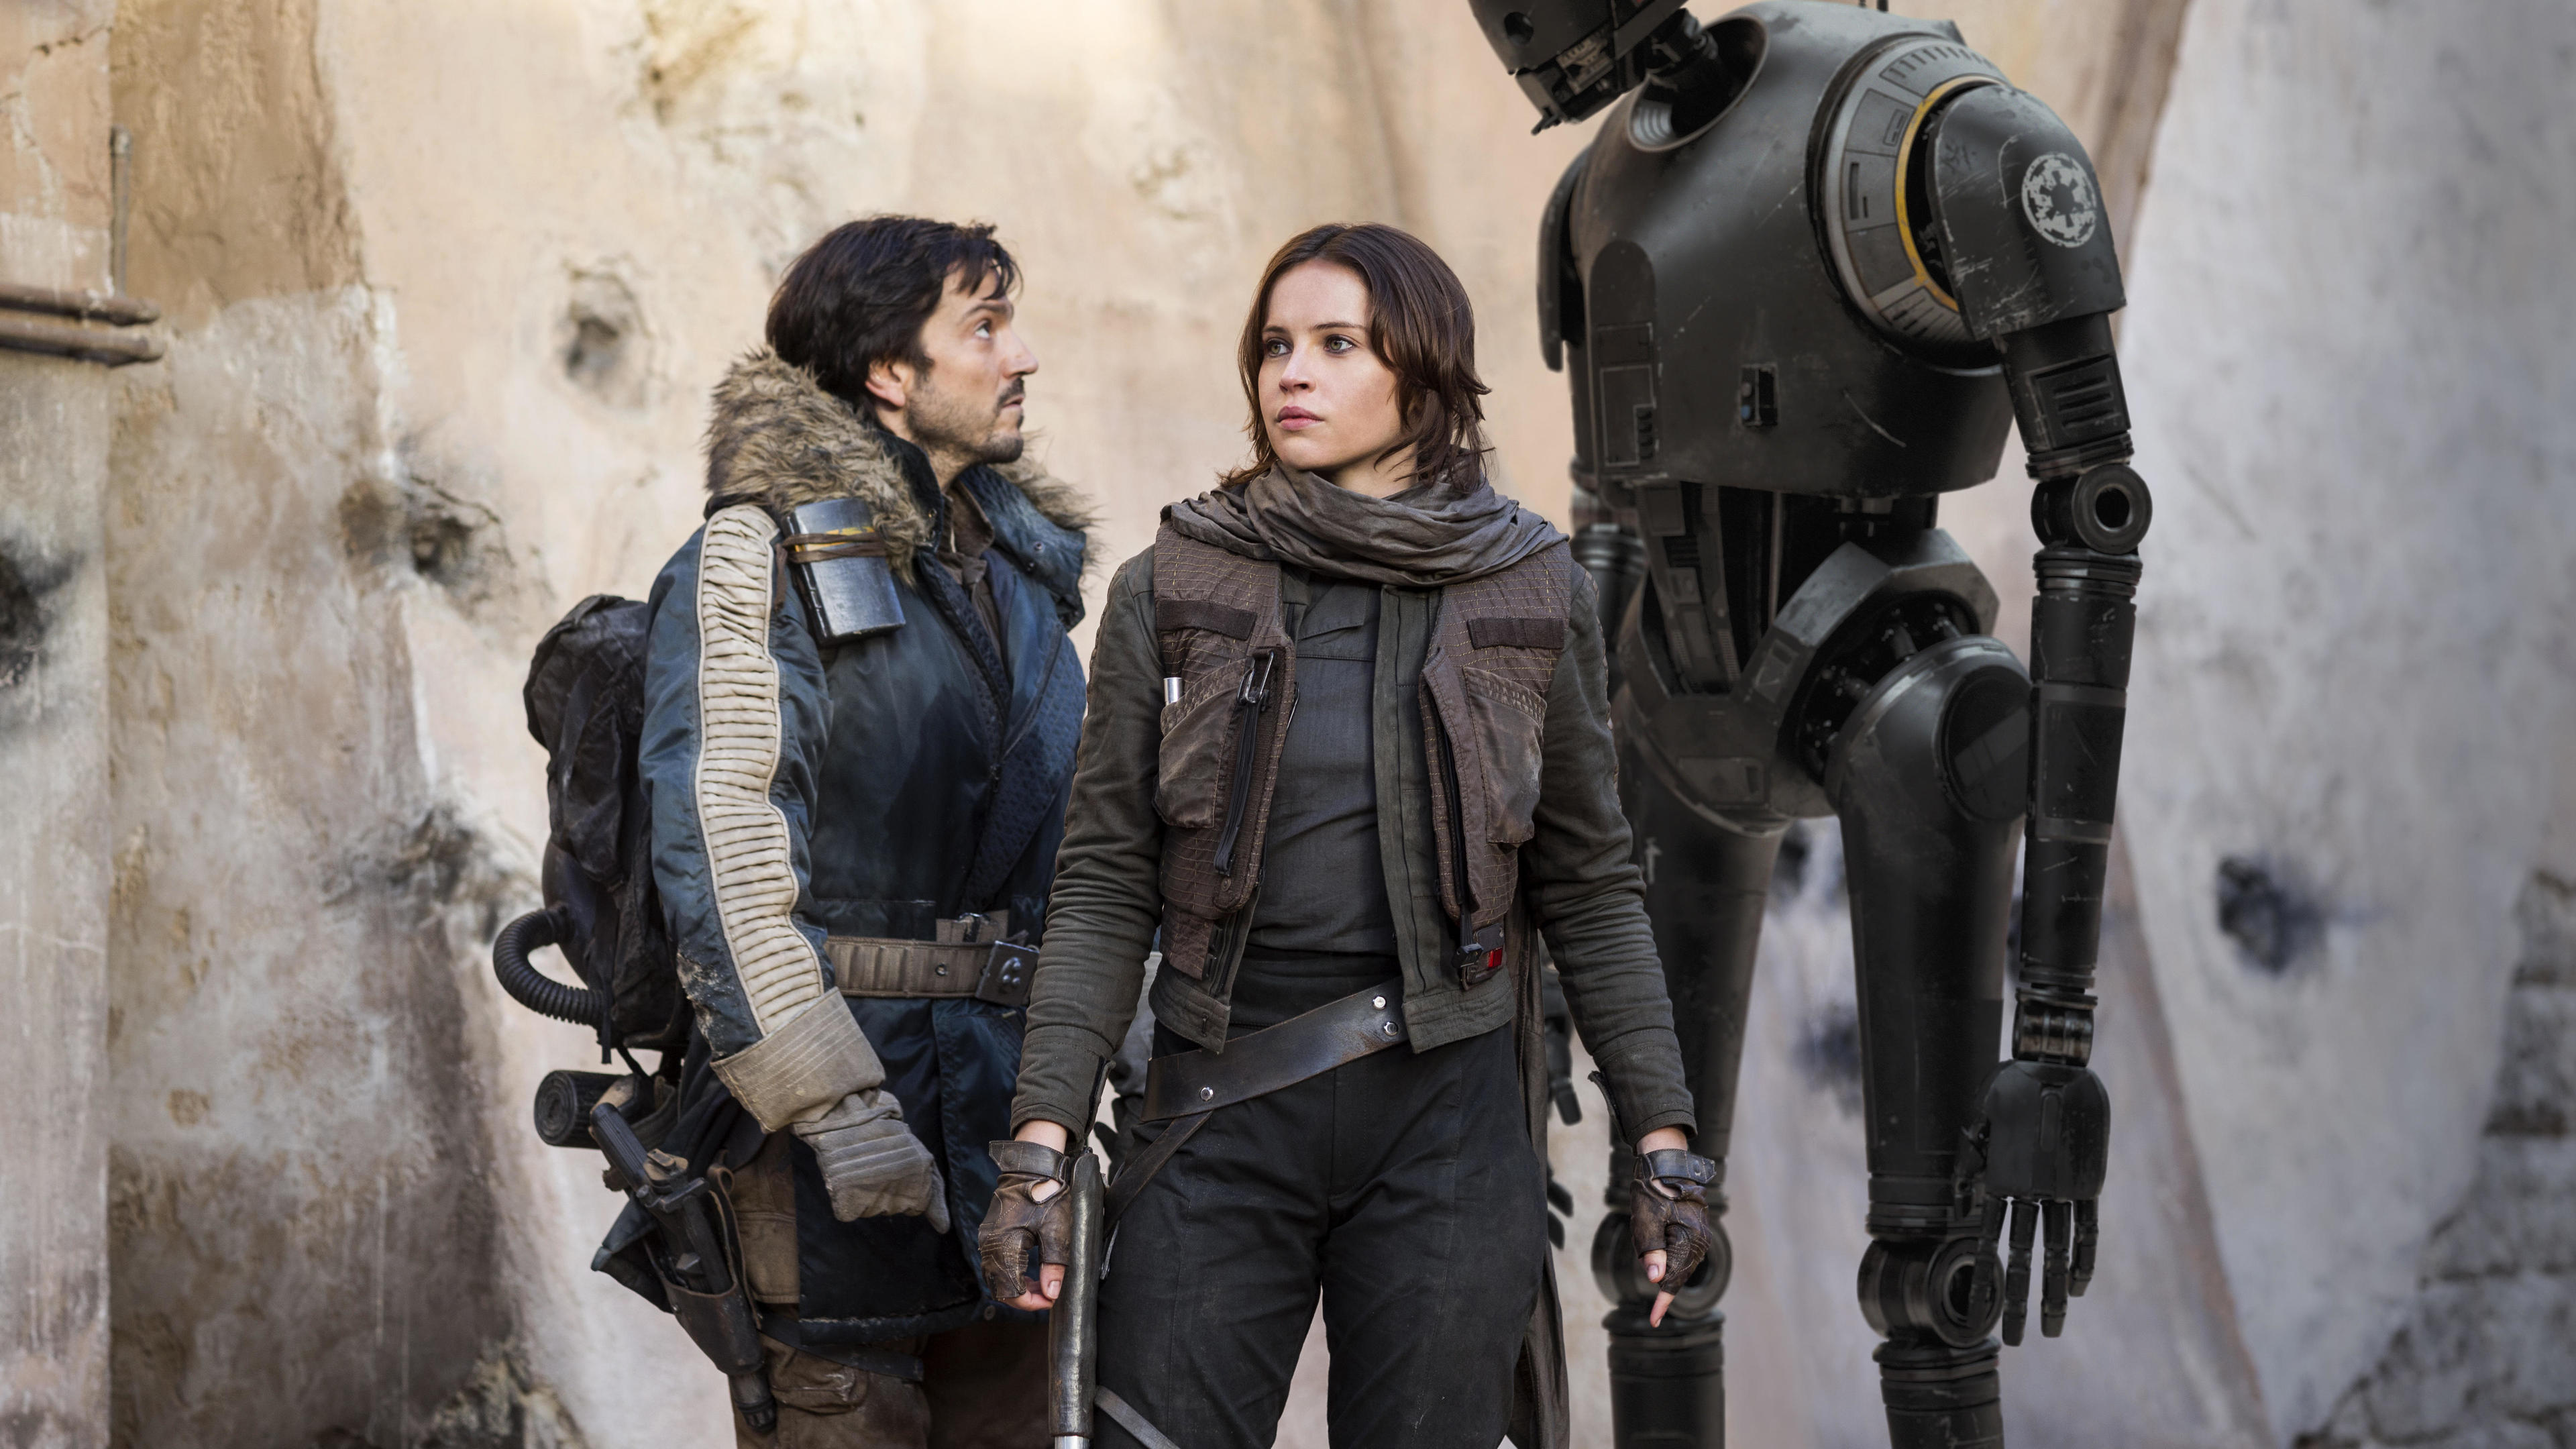 rogue one a star wars story felicity jones 1536400340 - Rogue One A Star Wars Story Felicity jones - star wars wallpapers, rogue one a star wars story wallpapers, movies wallpapers, deathtrooper wallpapers, 2016 movies wallpapers